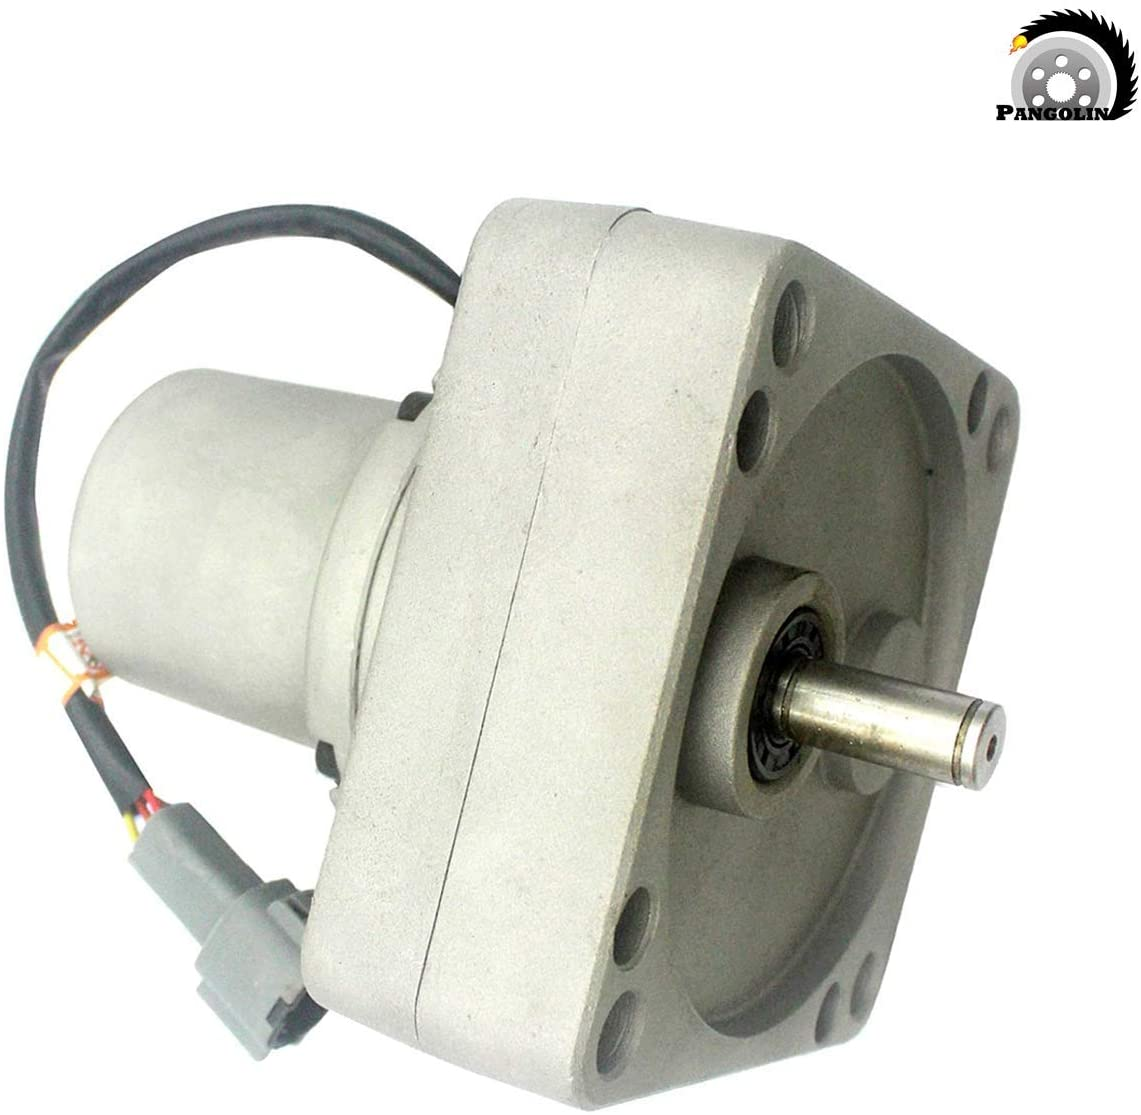 4257163 Stepping Throttle Motor Square Single Cable for Hitachi EX100-1 EX100-2 EX100-3 Governor Motor Excavator Parts